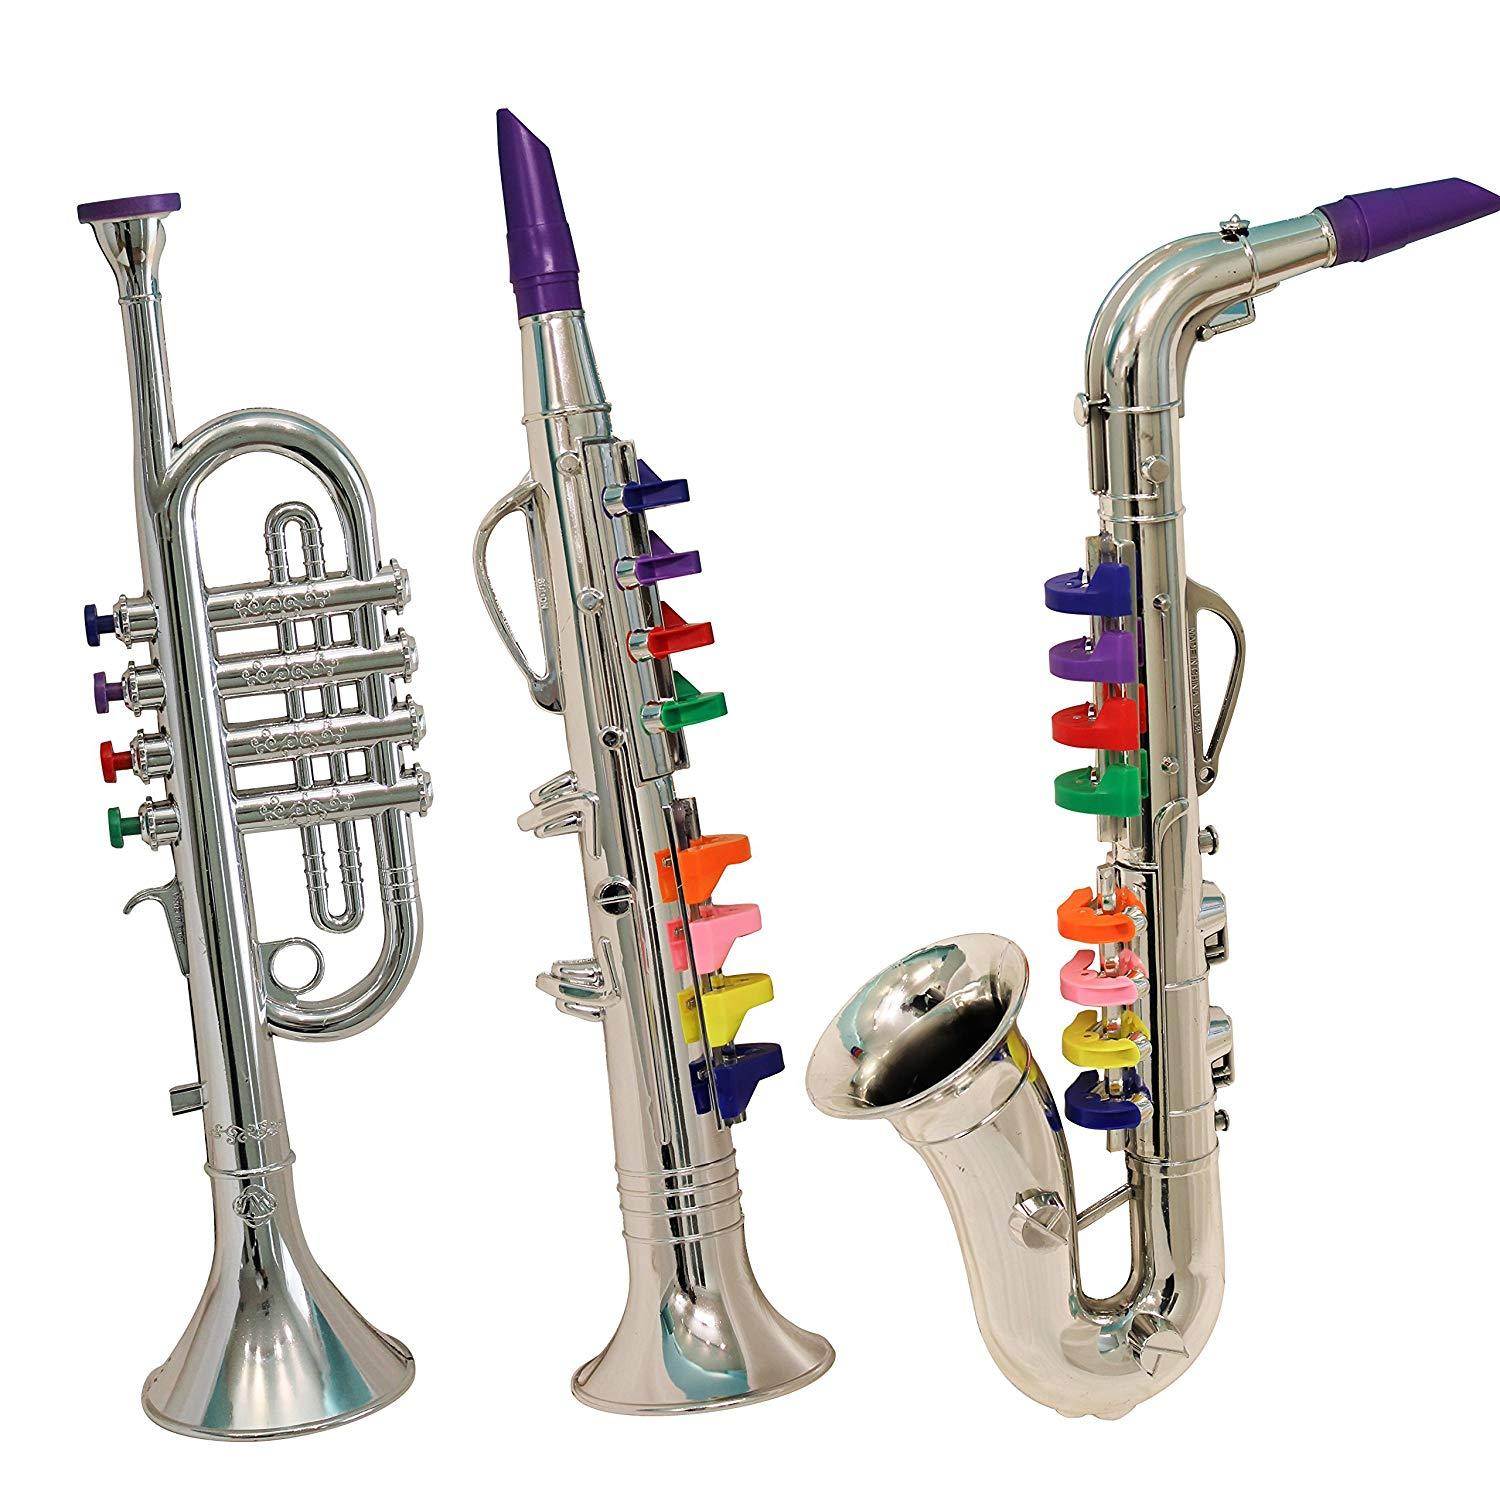 Set of 3 Music 1. Clarinet 2. Saxophone 3. Trumpet, Combo